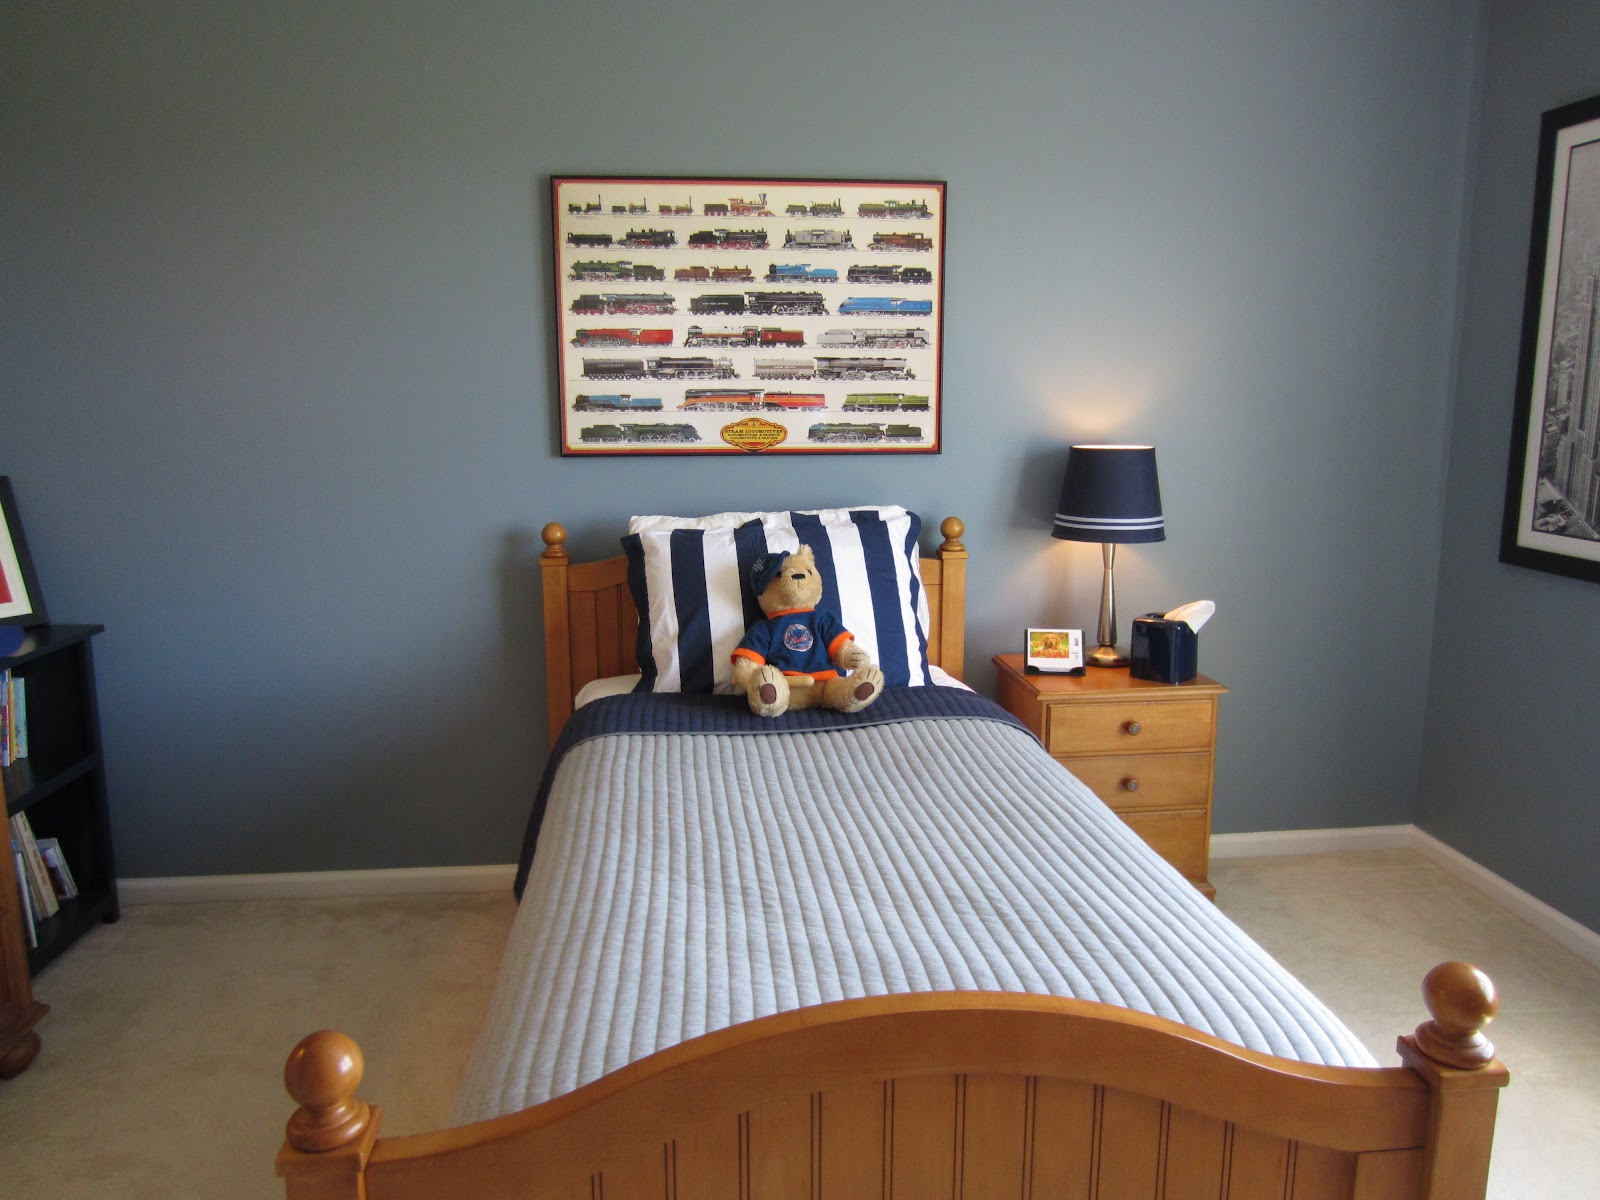 My Son s Room Before and After